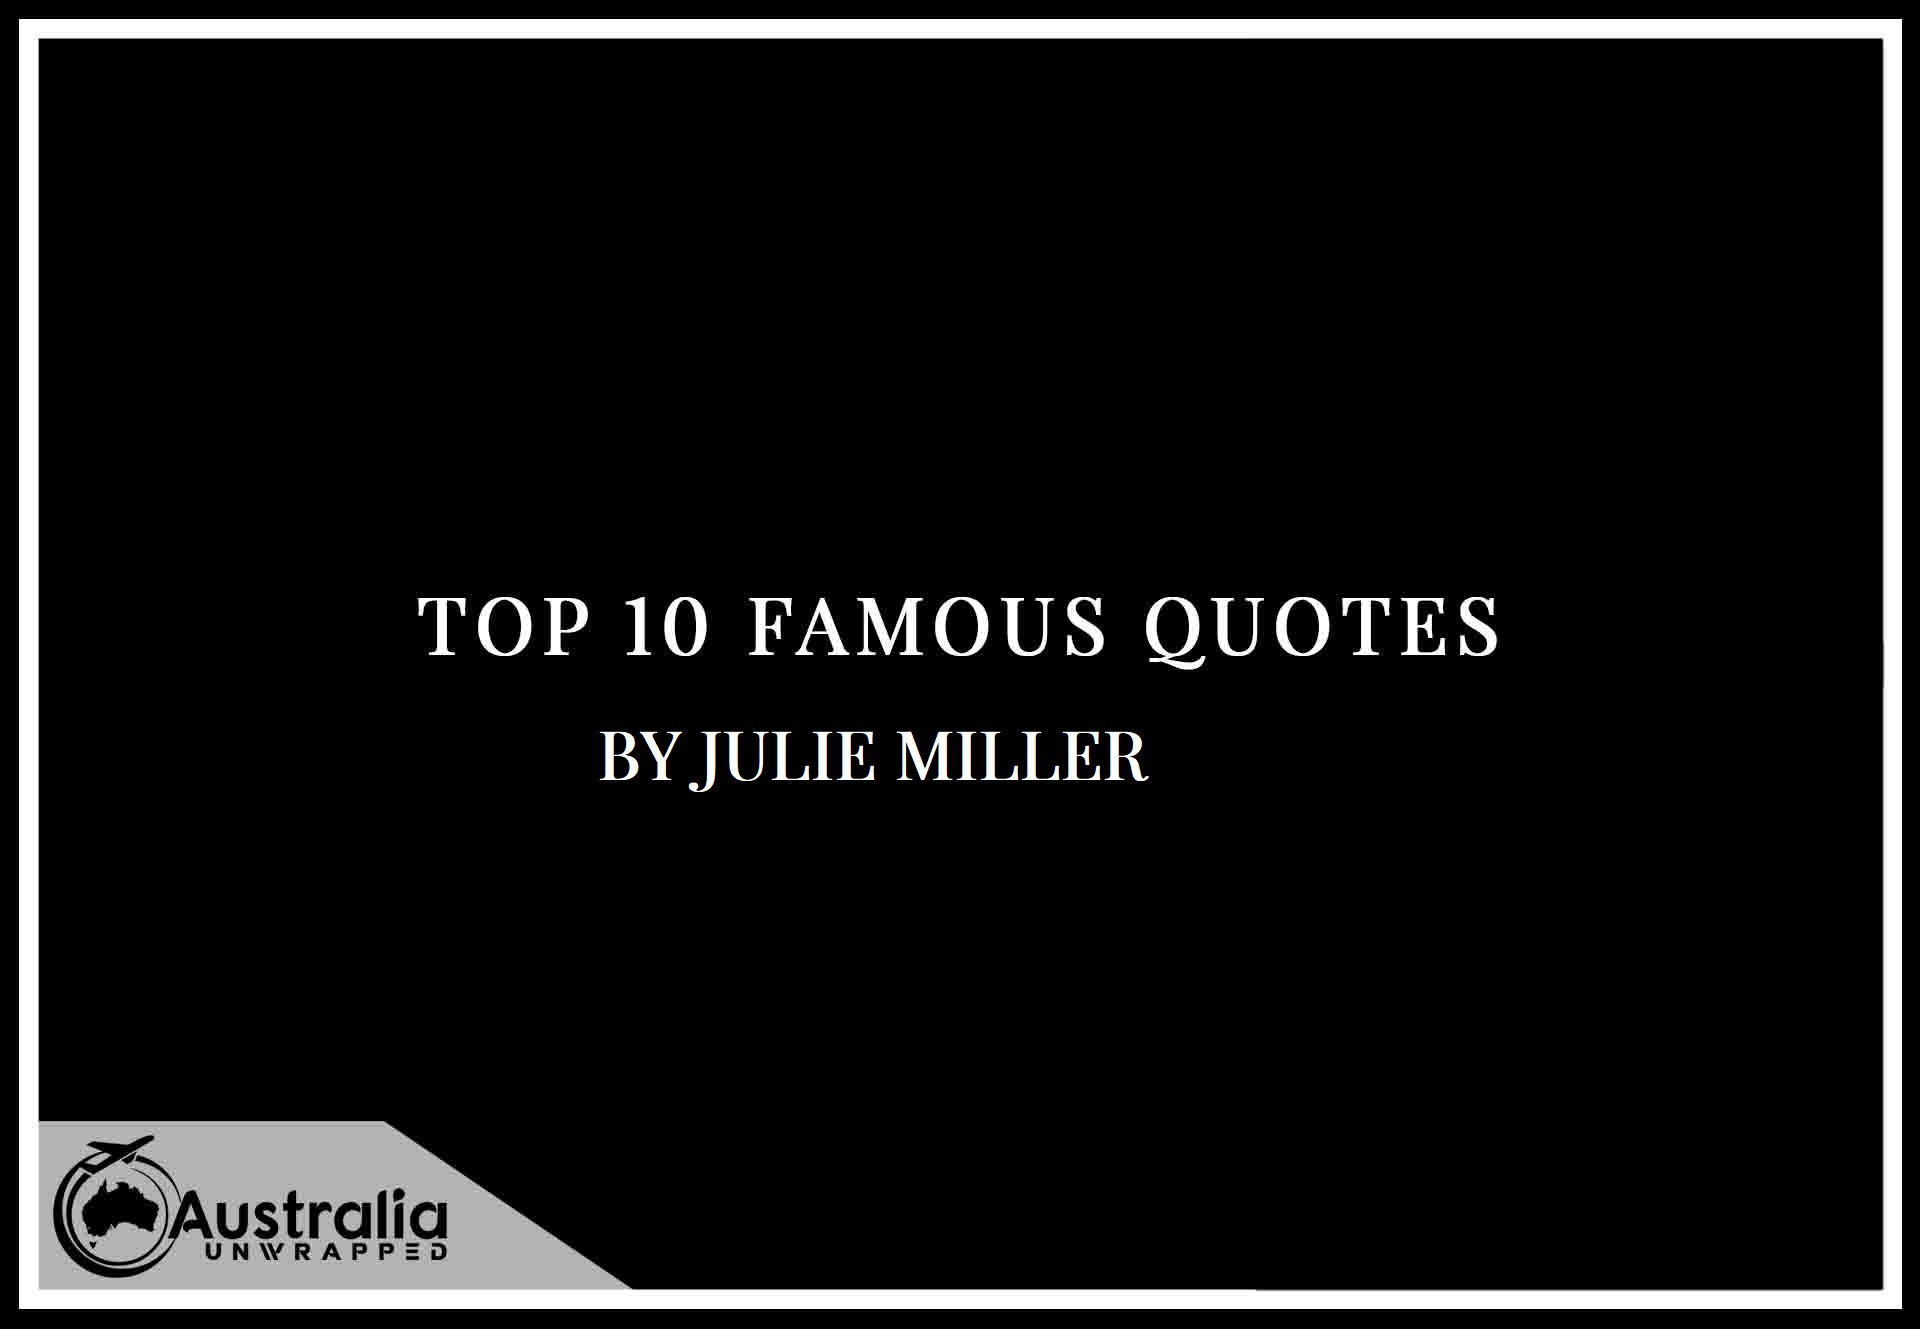 Top 10 Famous Quotes by Author Julie Miller